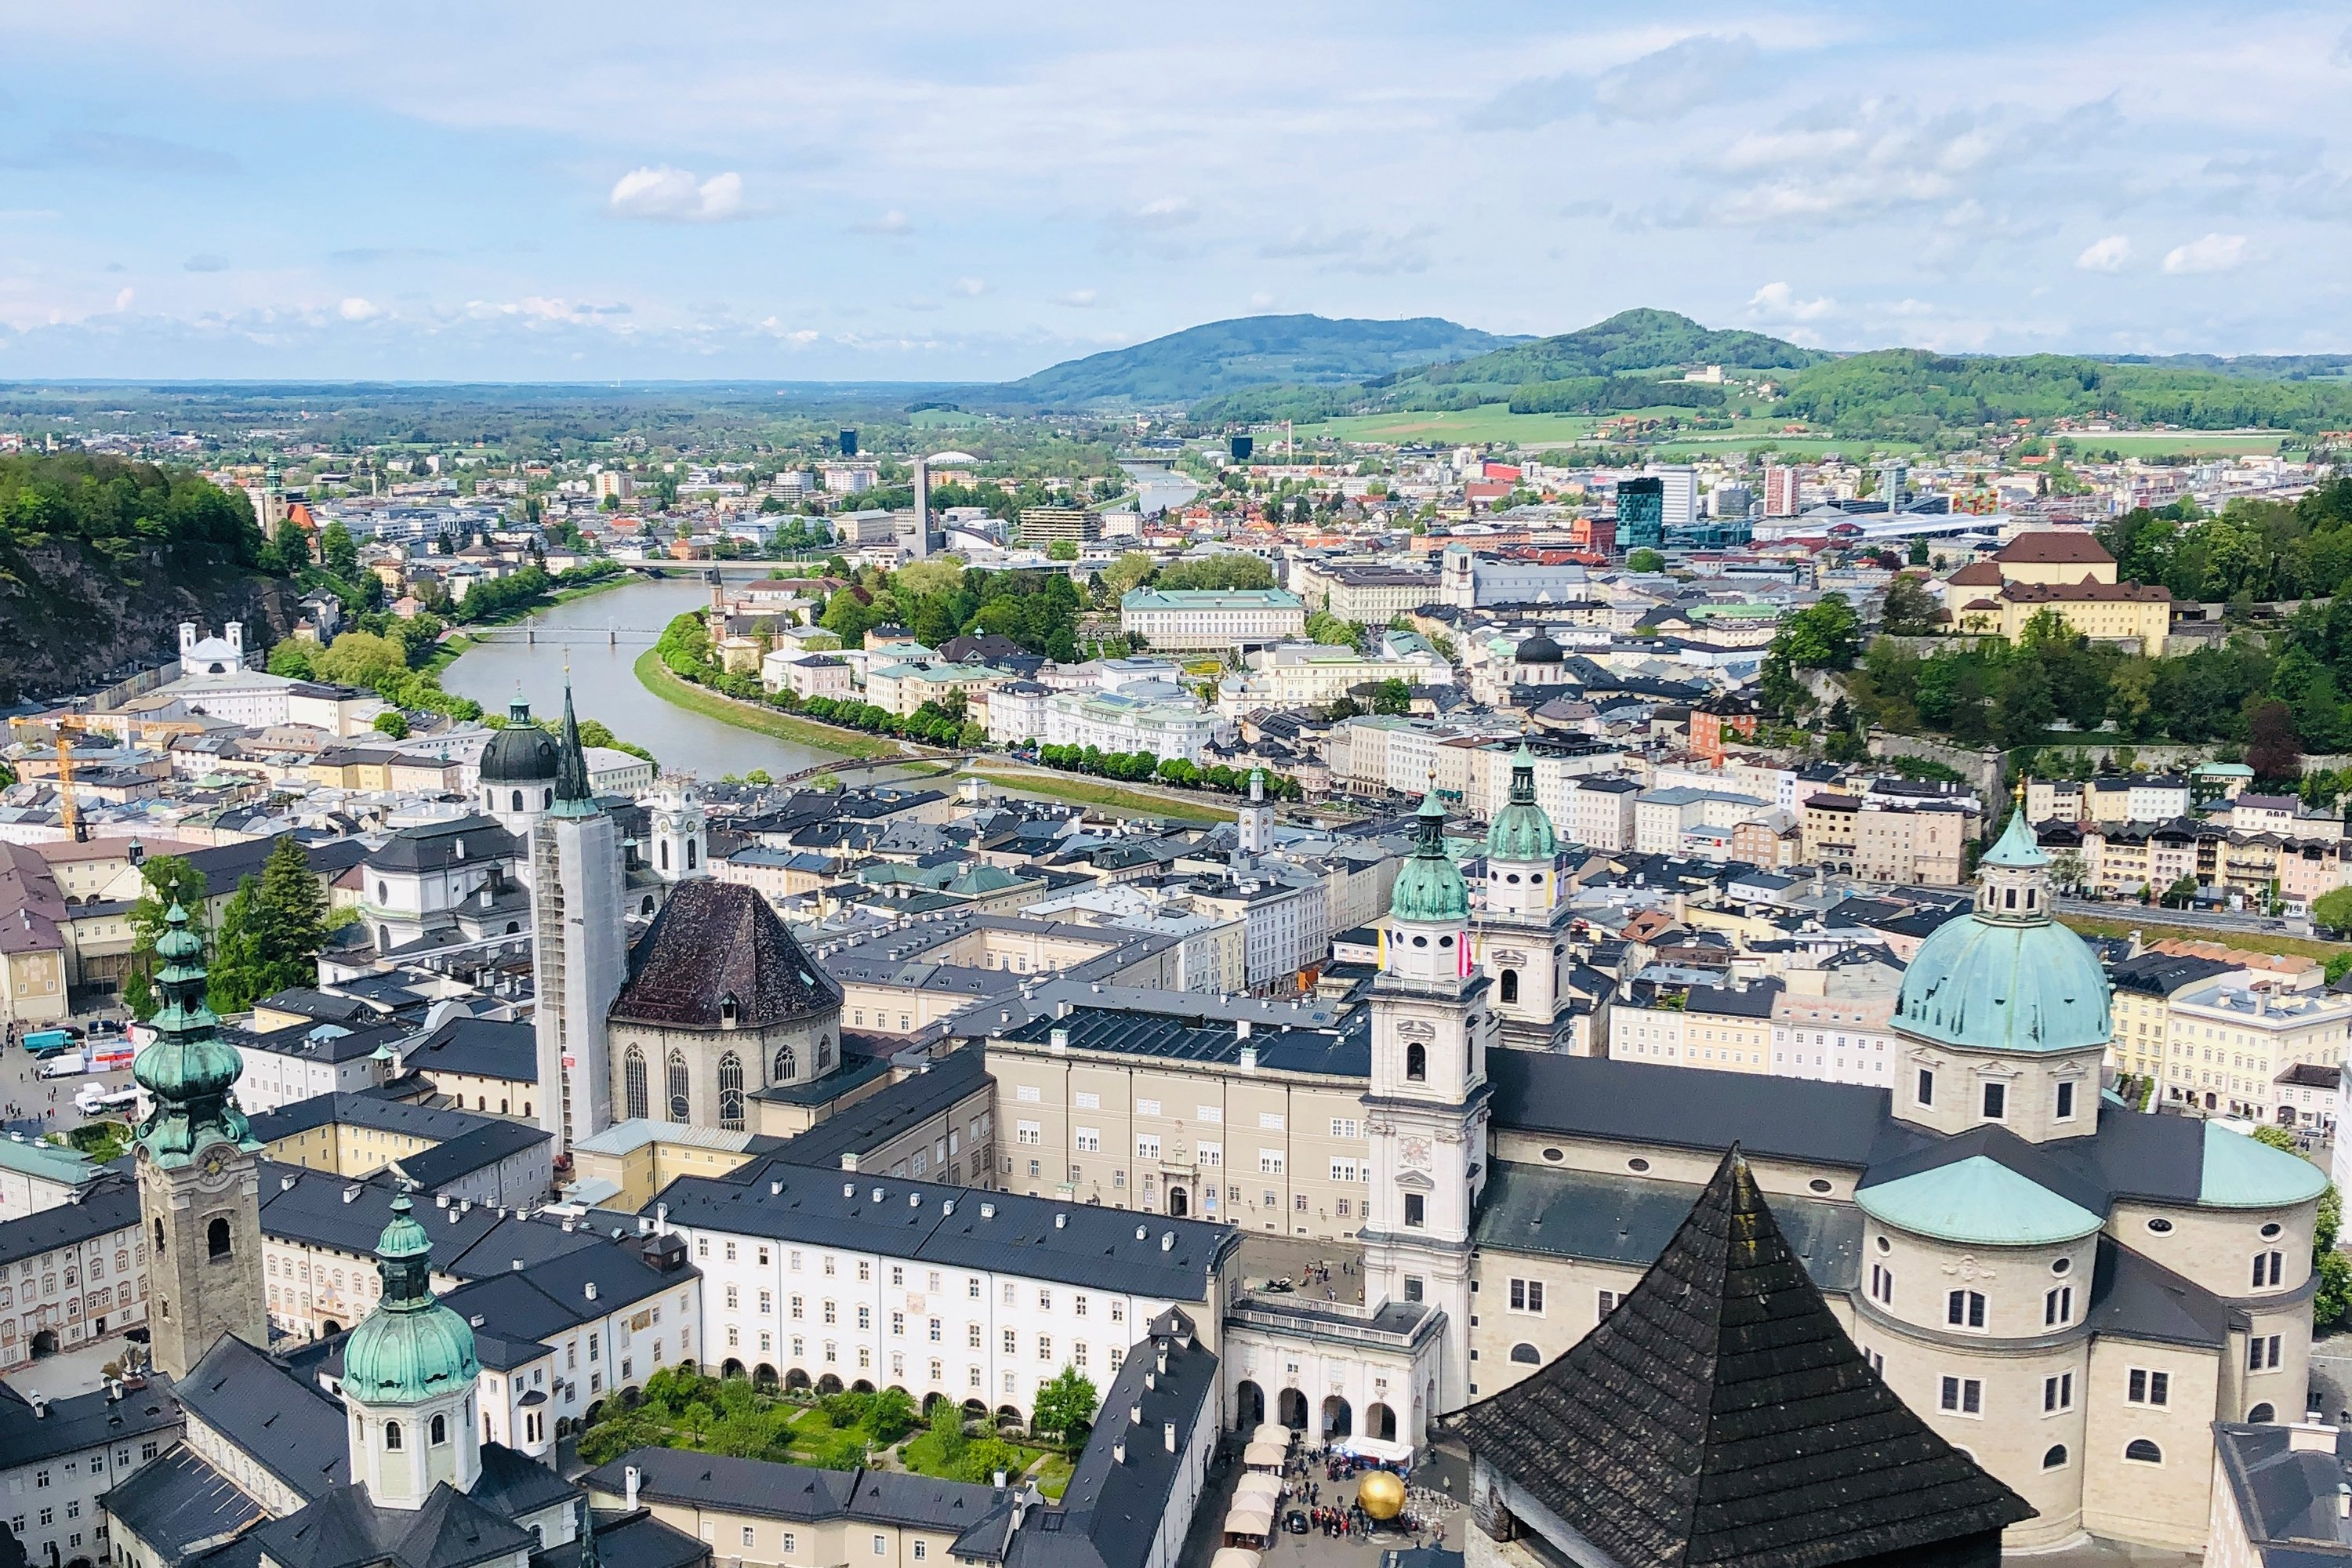 Tourists have a good view of the city from the Hohensalzburg Fortress high above Salzburg. (Photo by Catherine Waibel via dpa)